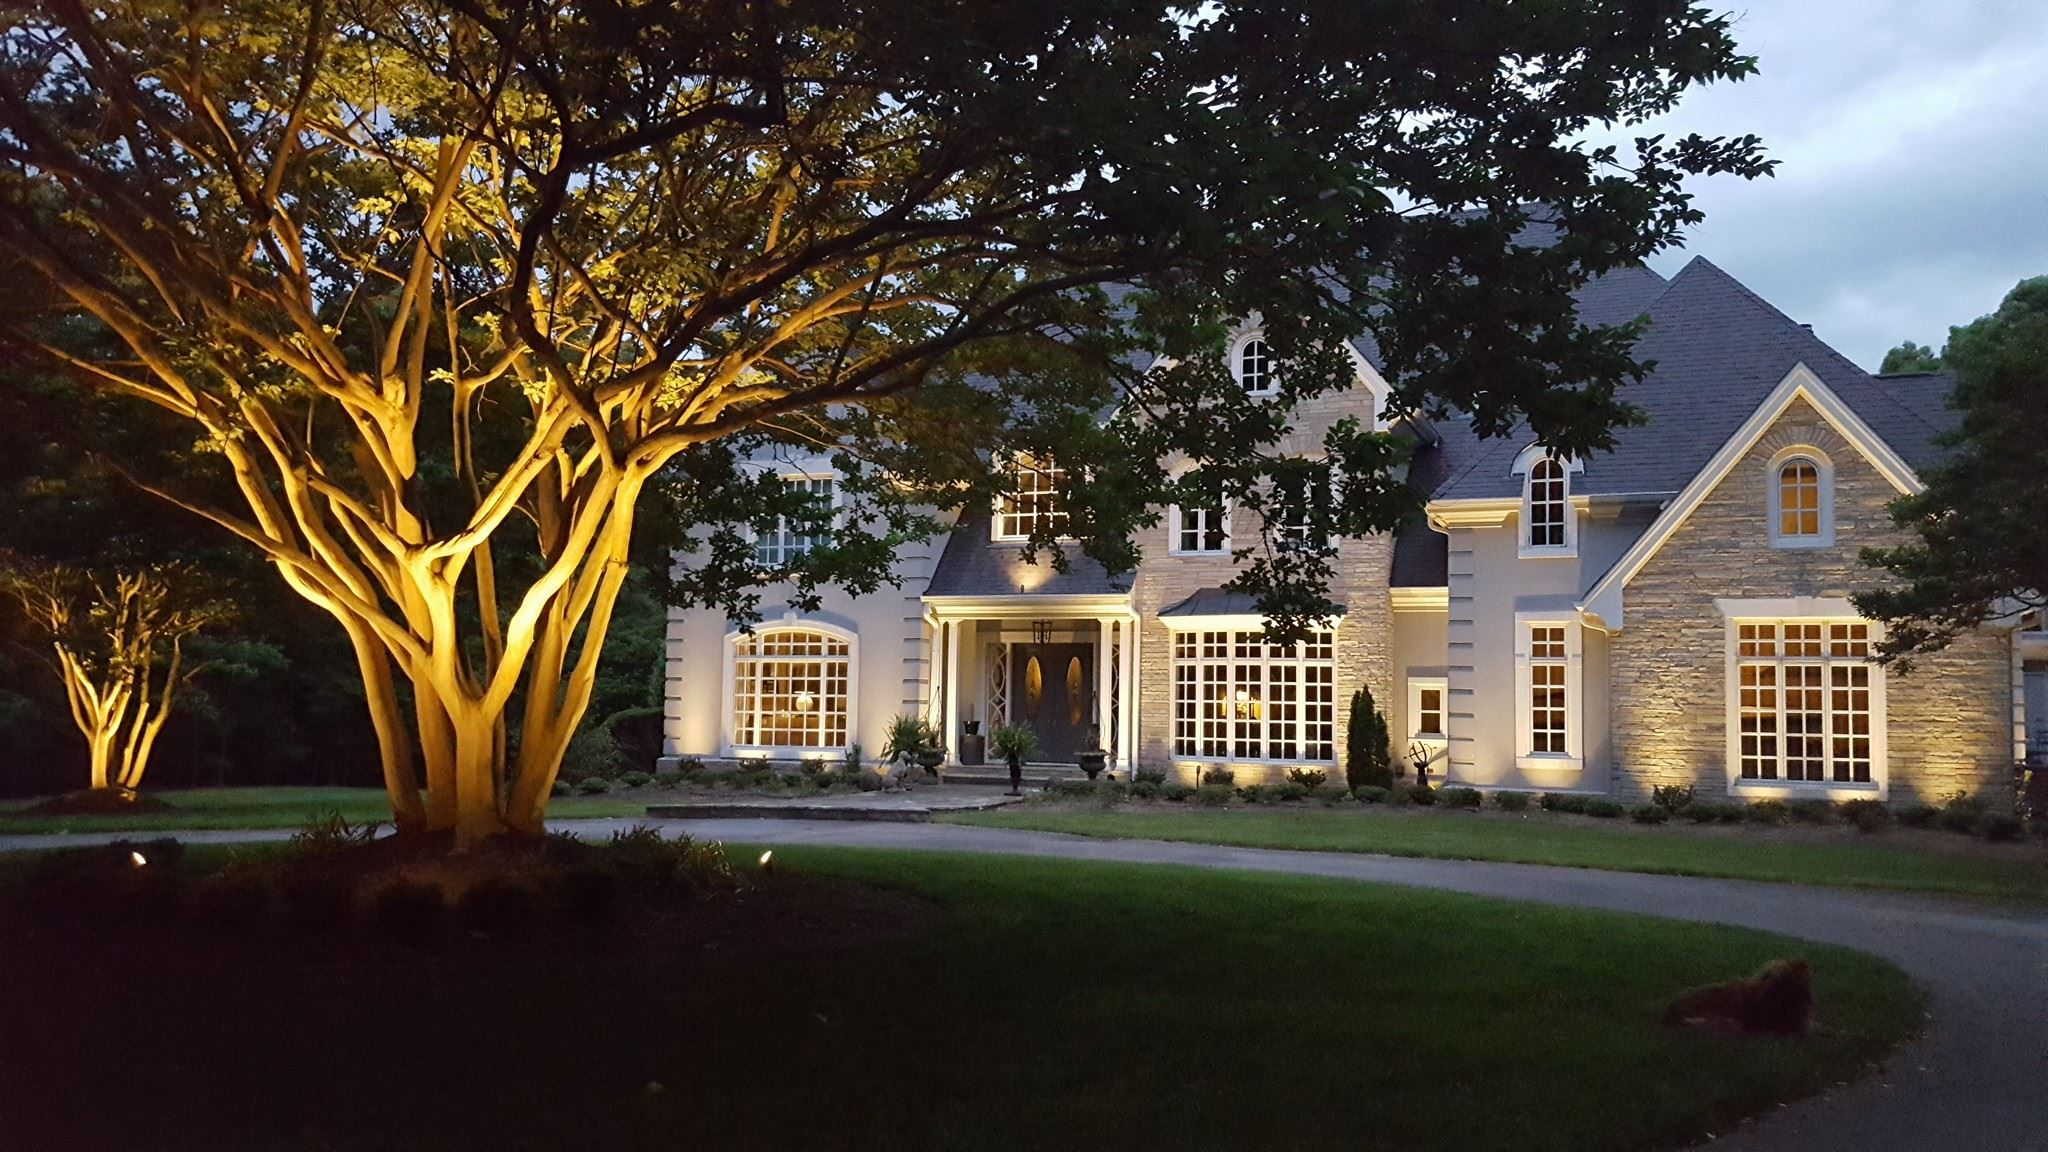 Our blog outdoor lighting perspectives in addition to bringing your homes facade to life at night outdoor lighting can do the same for your landscape cascading illumination that flows workwithnaturefo